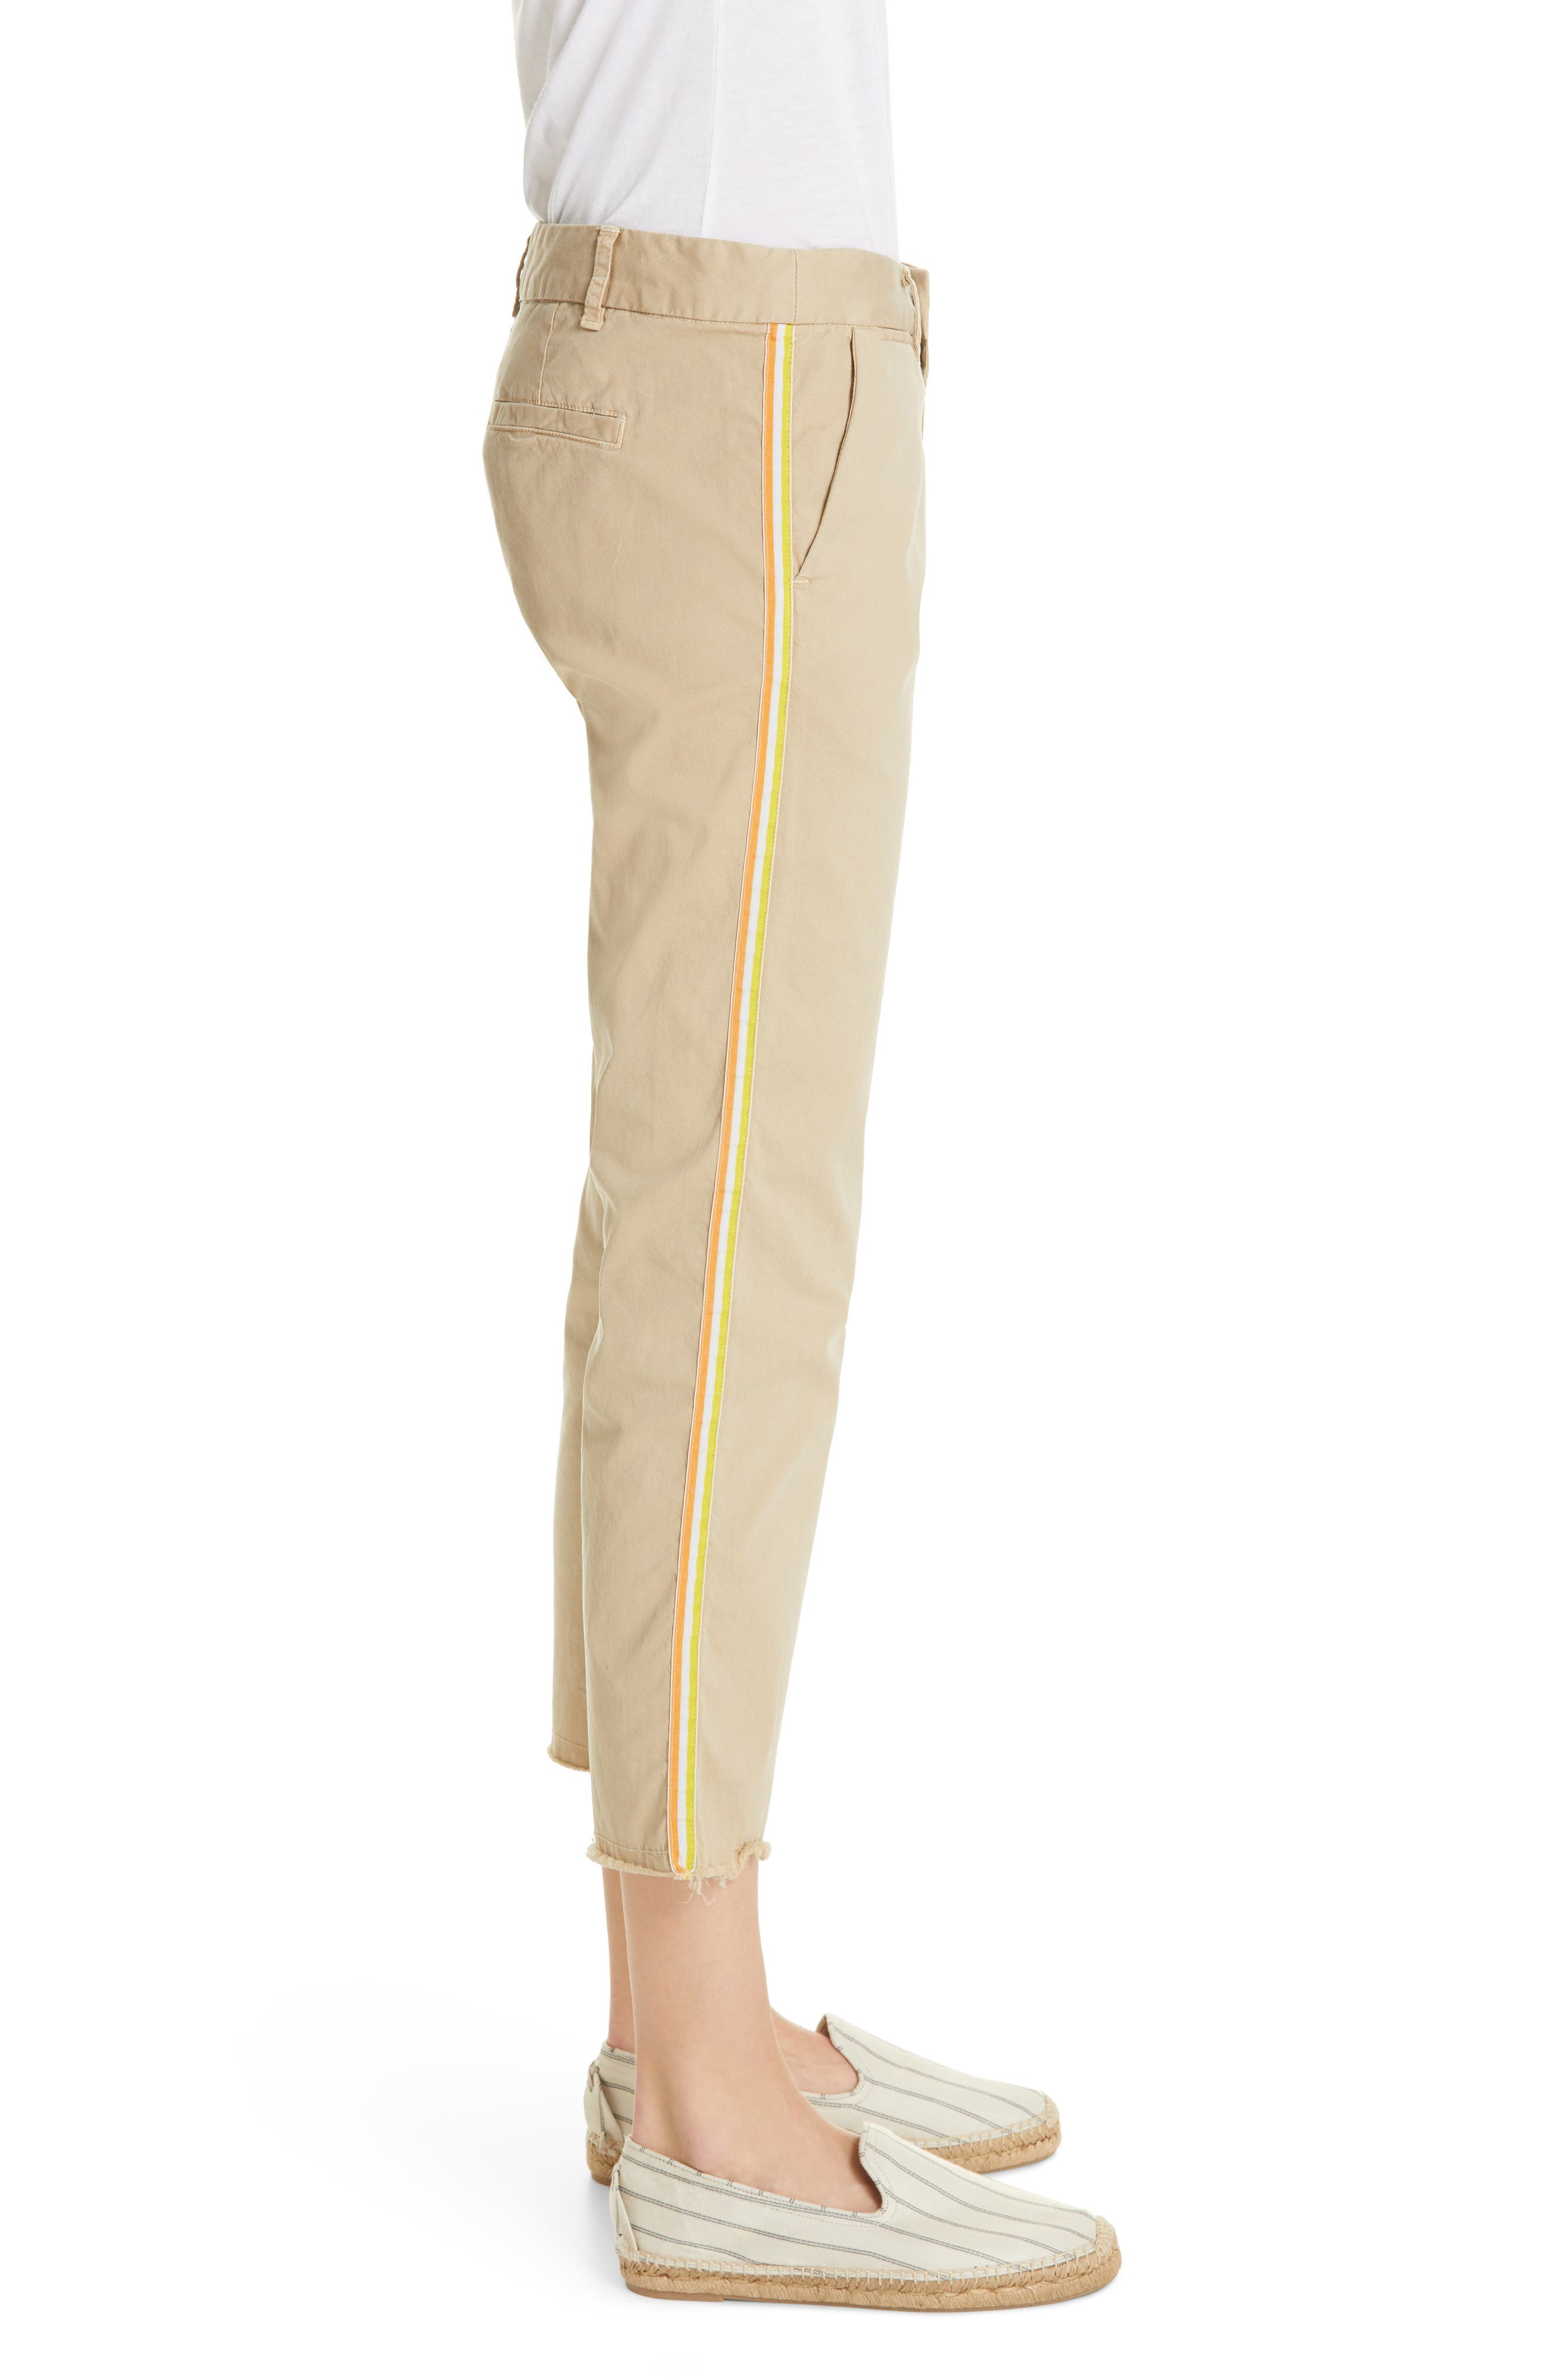 NILI LOTAN, East Hampton Side Tape Crop Pants, Alternate thumbnail 4, color, DESRT SAND ORANGE/ YELLOW TAPE